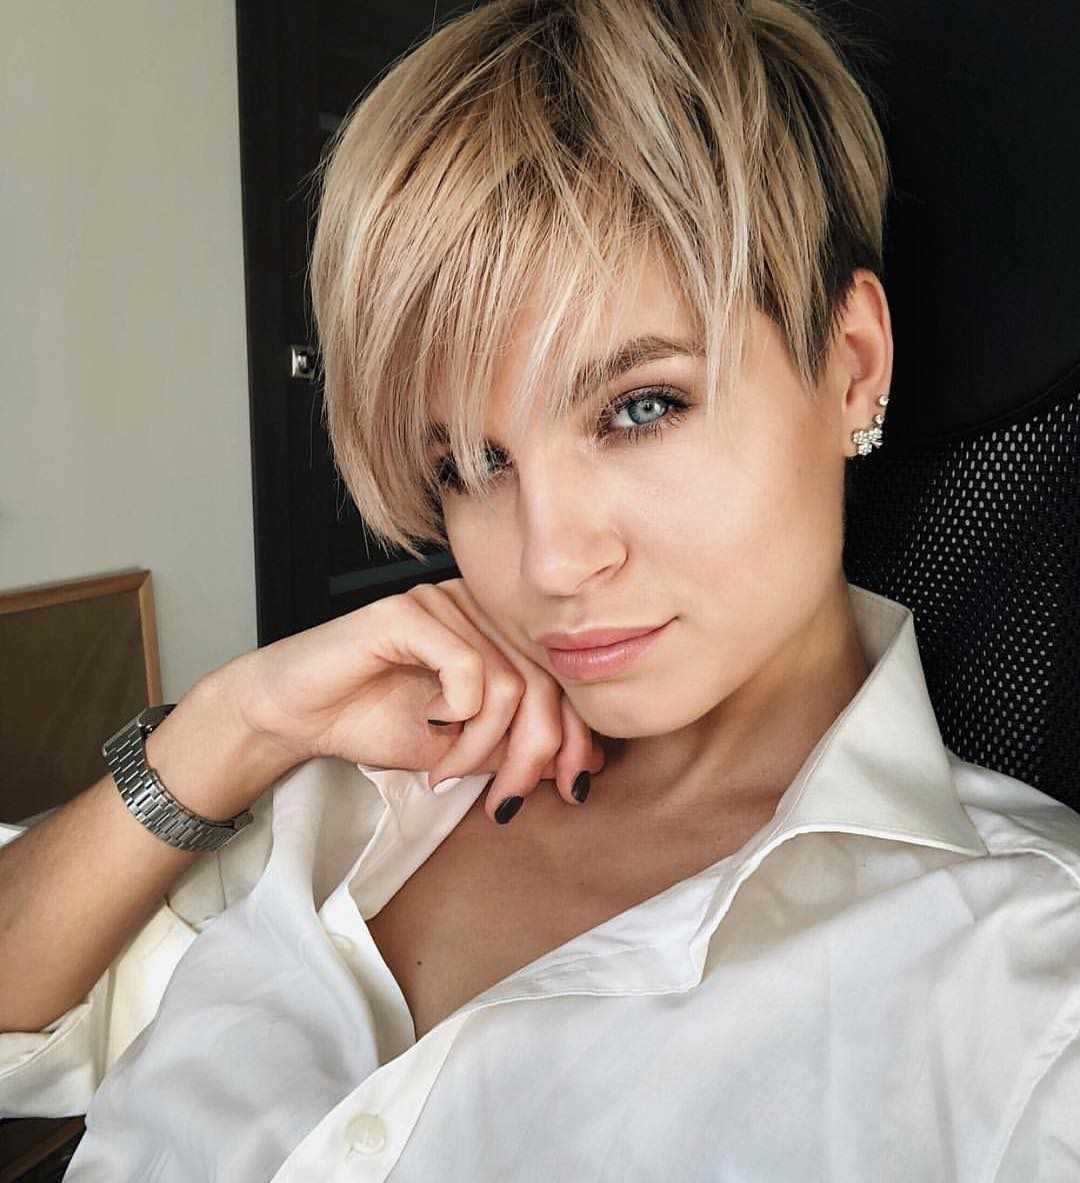 New 60 Short Hairstyles For Round Faces 2018 2019 » Hairstyle Samples Ideas With Pictures